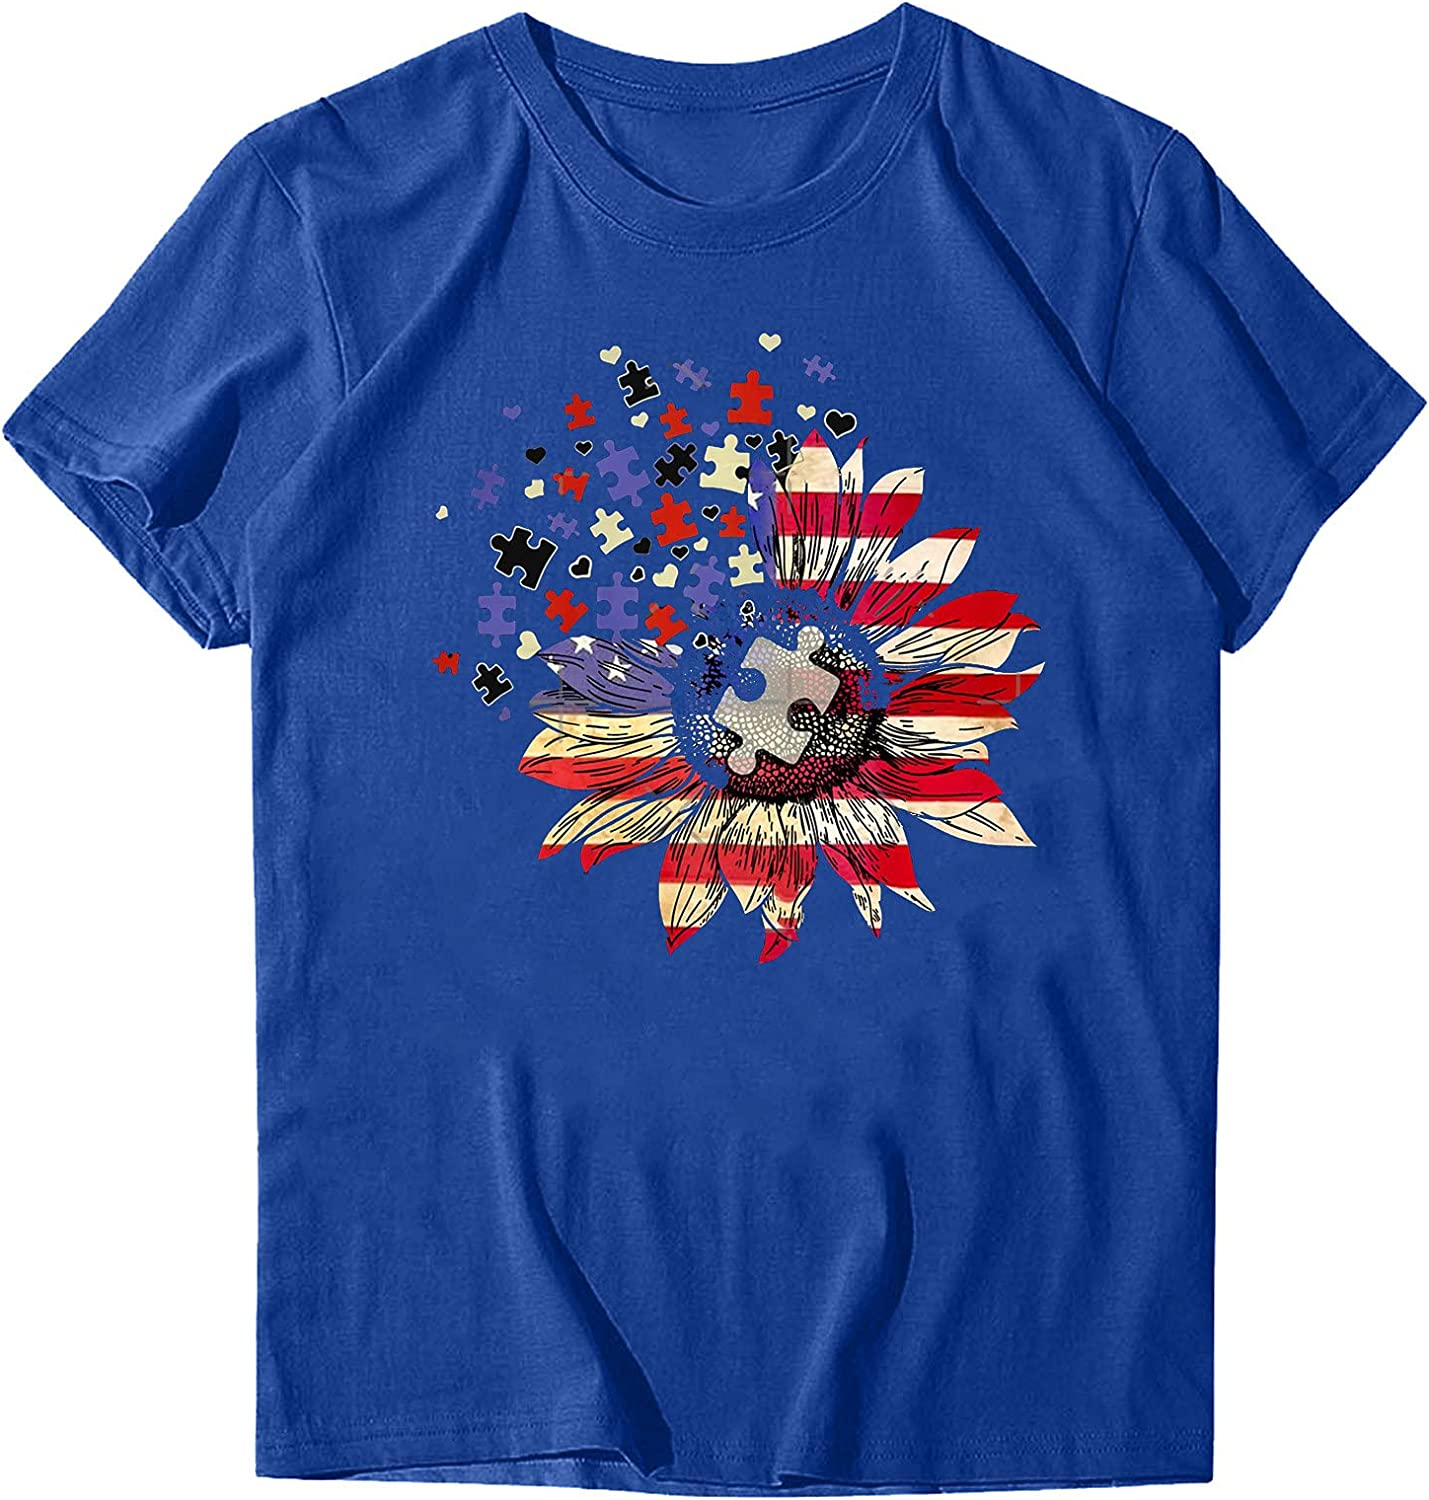 Sayhi Women's Casual Tunics Shirts Sunflower Print Round Neck T-Shirt Short Sleeve Tops Independence Day Shirts